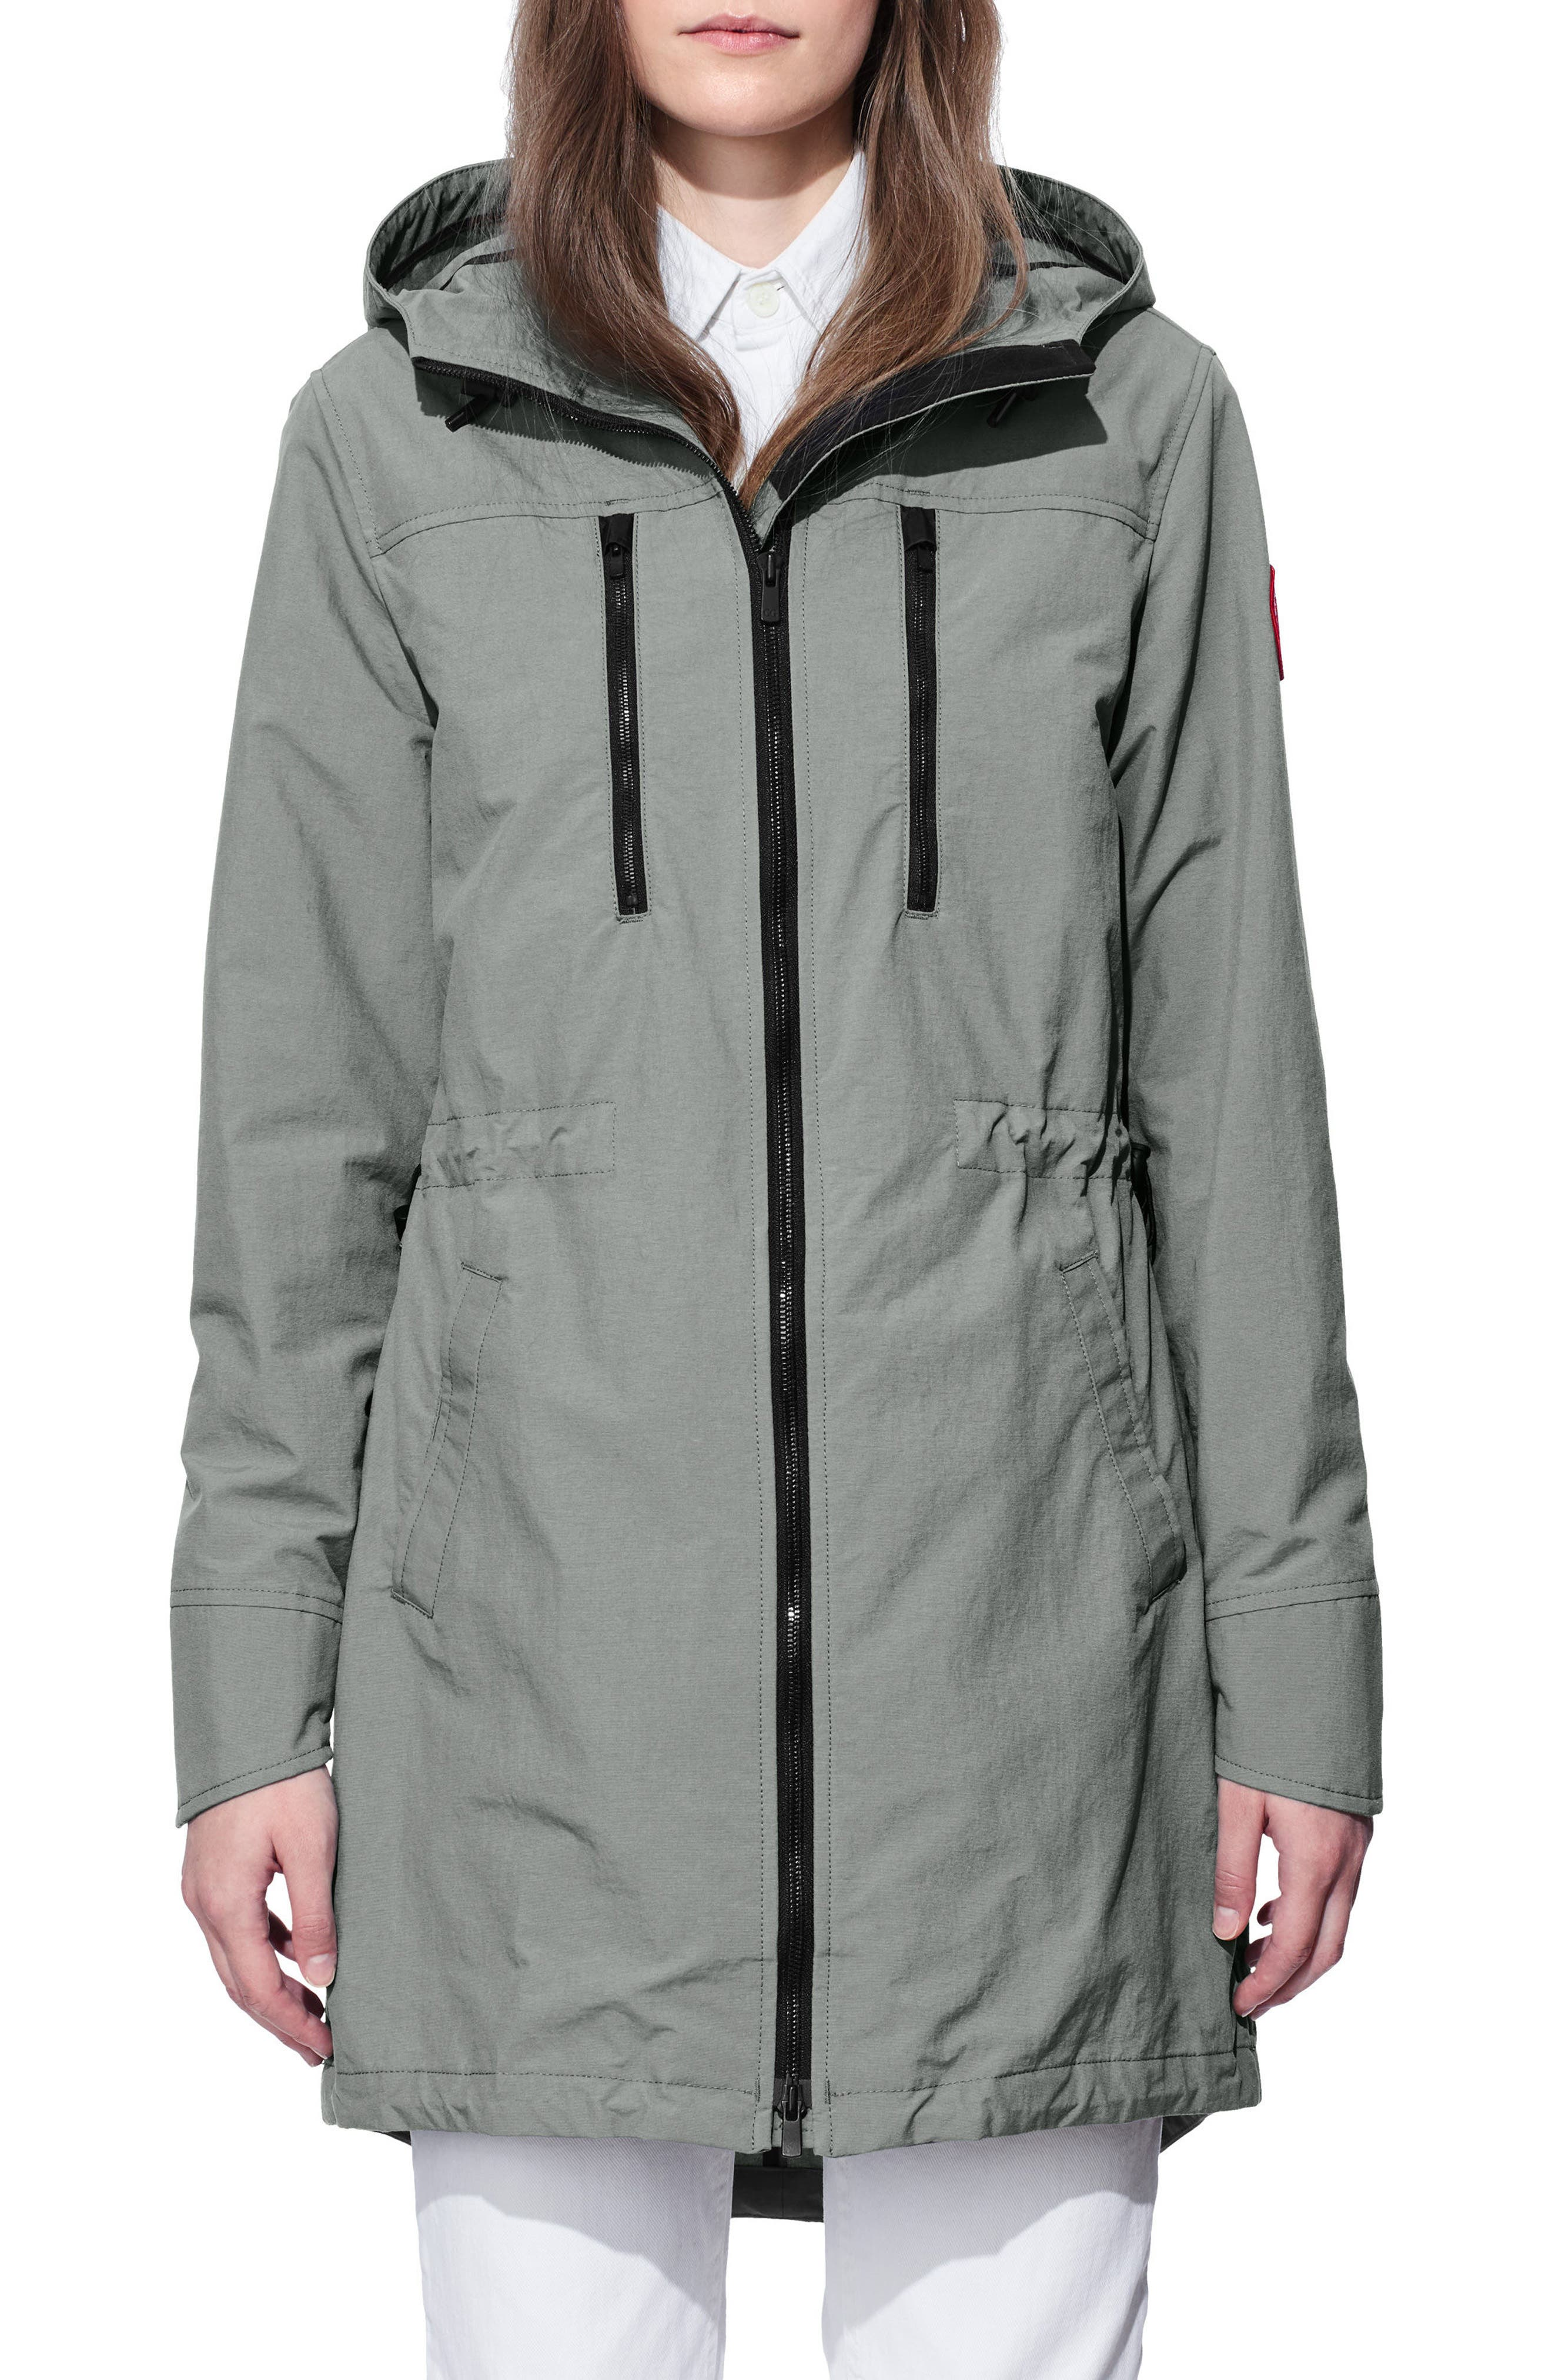 Brossard Hooded Drop Tail Jacket,                             Main thumbnail 1, color,                             031